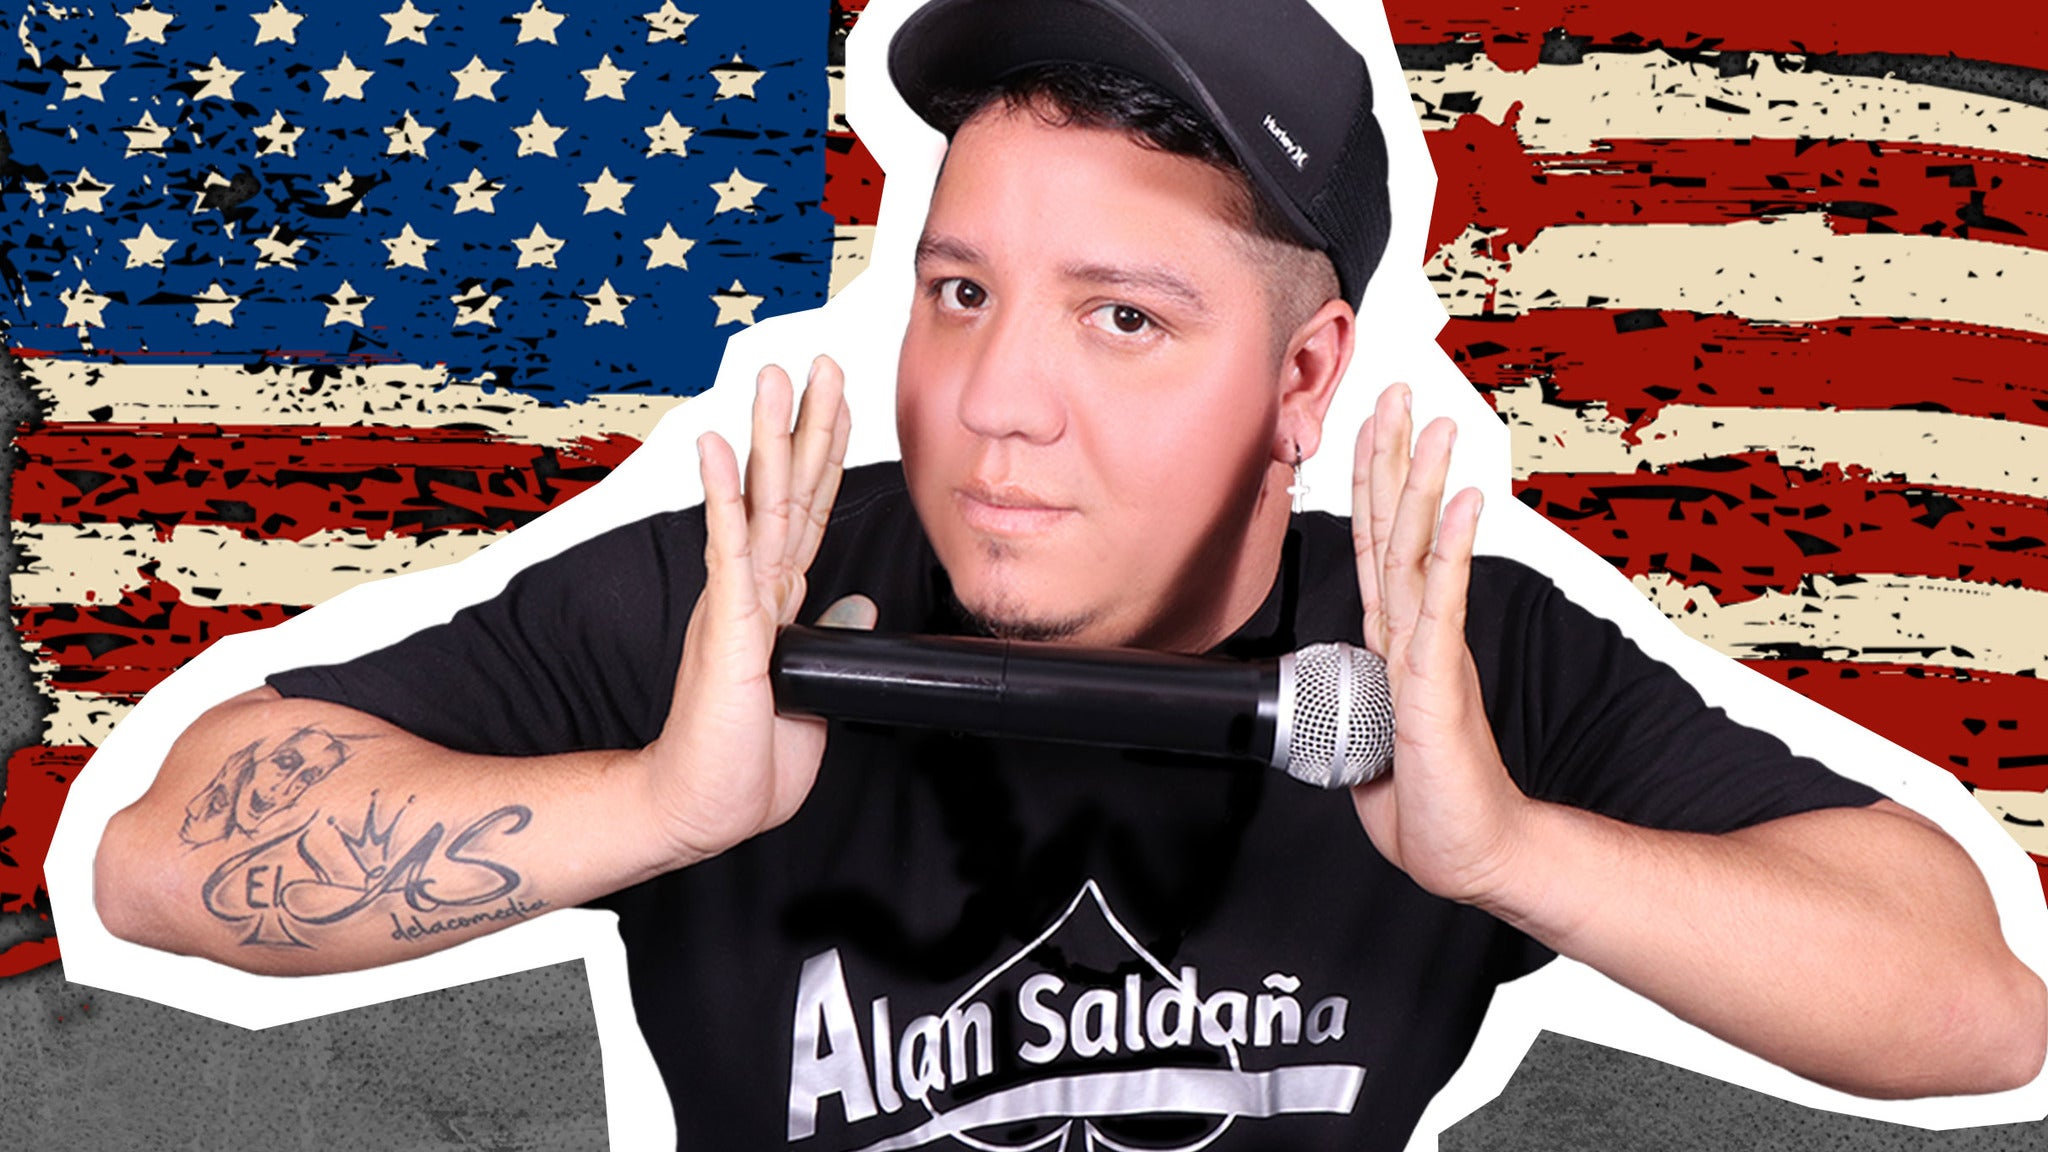 Alan Saldaña at Duke Energy Center for the Performing Arts